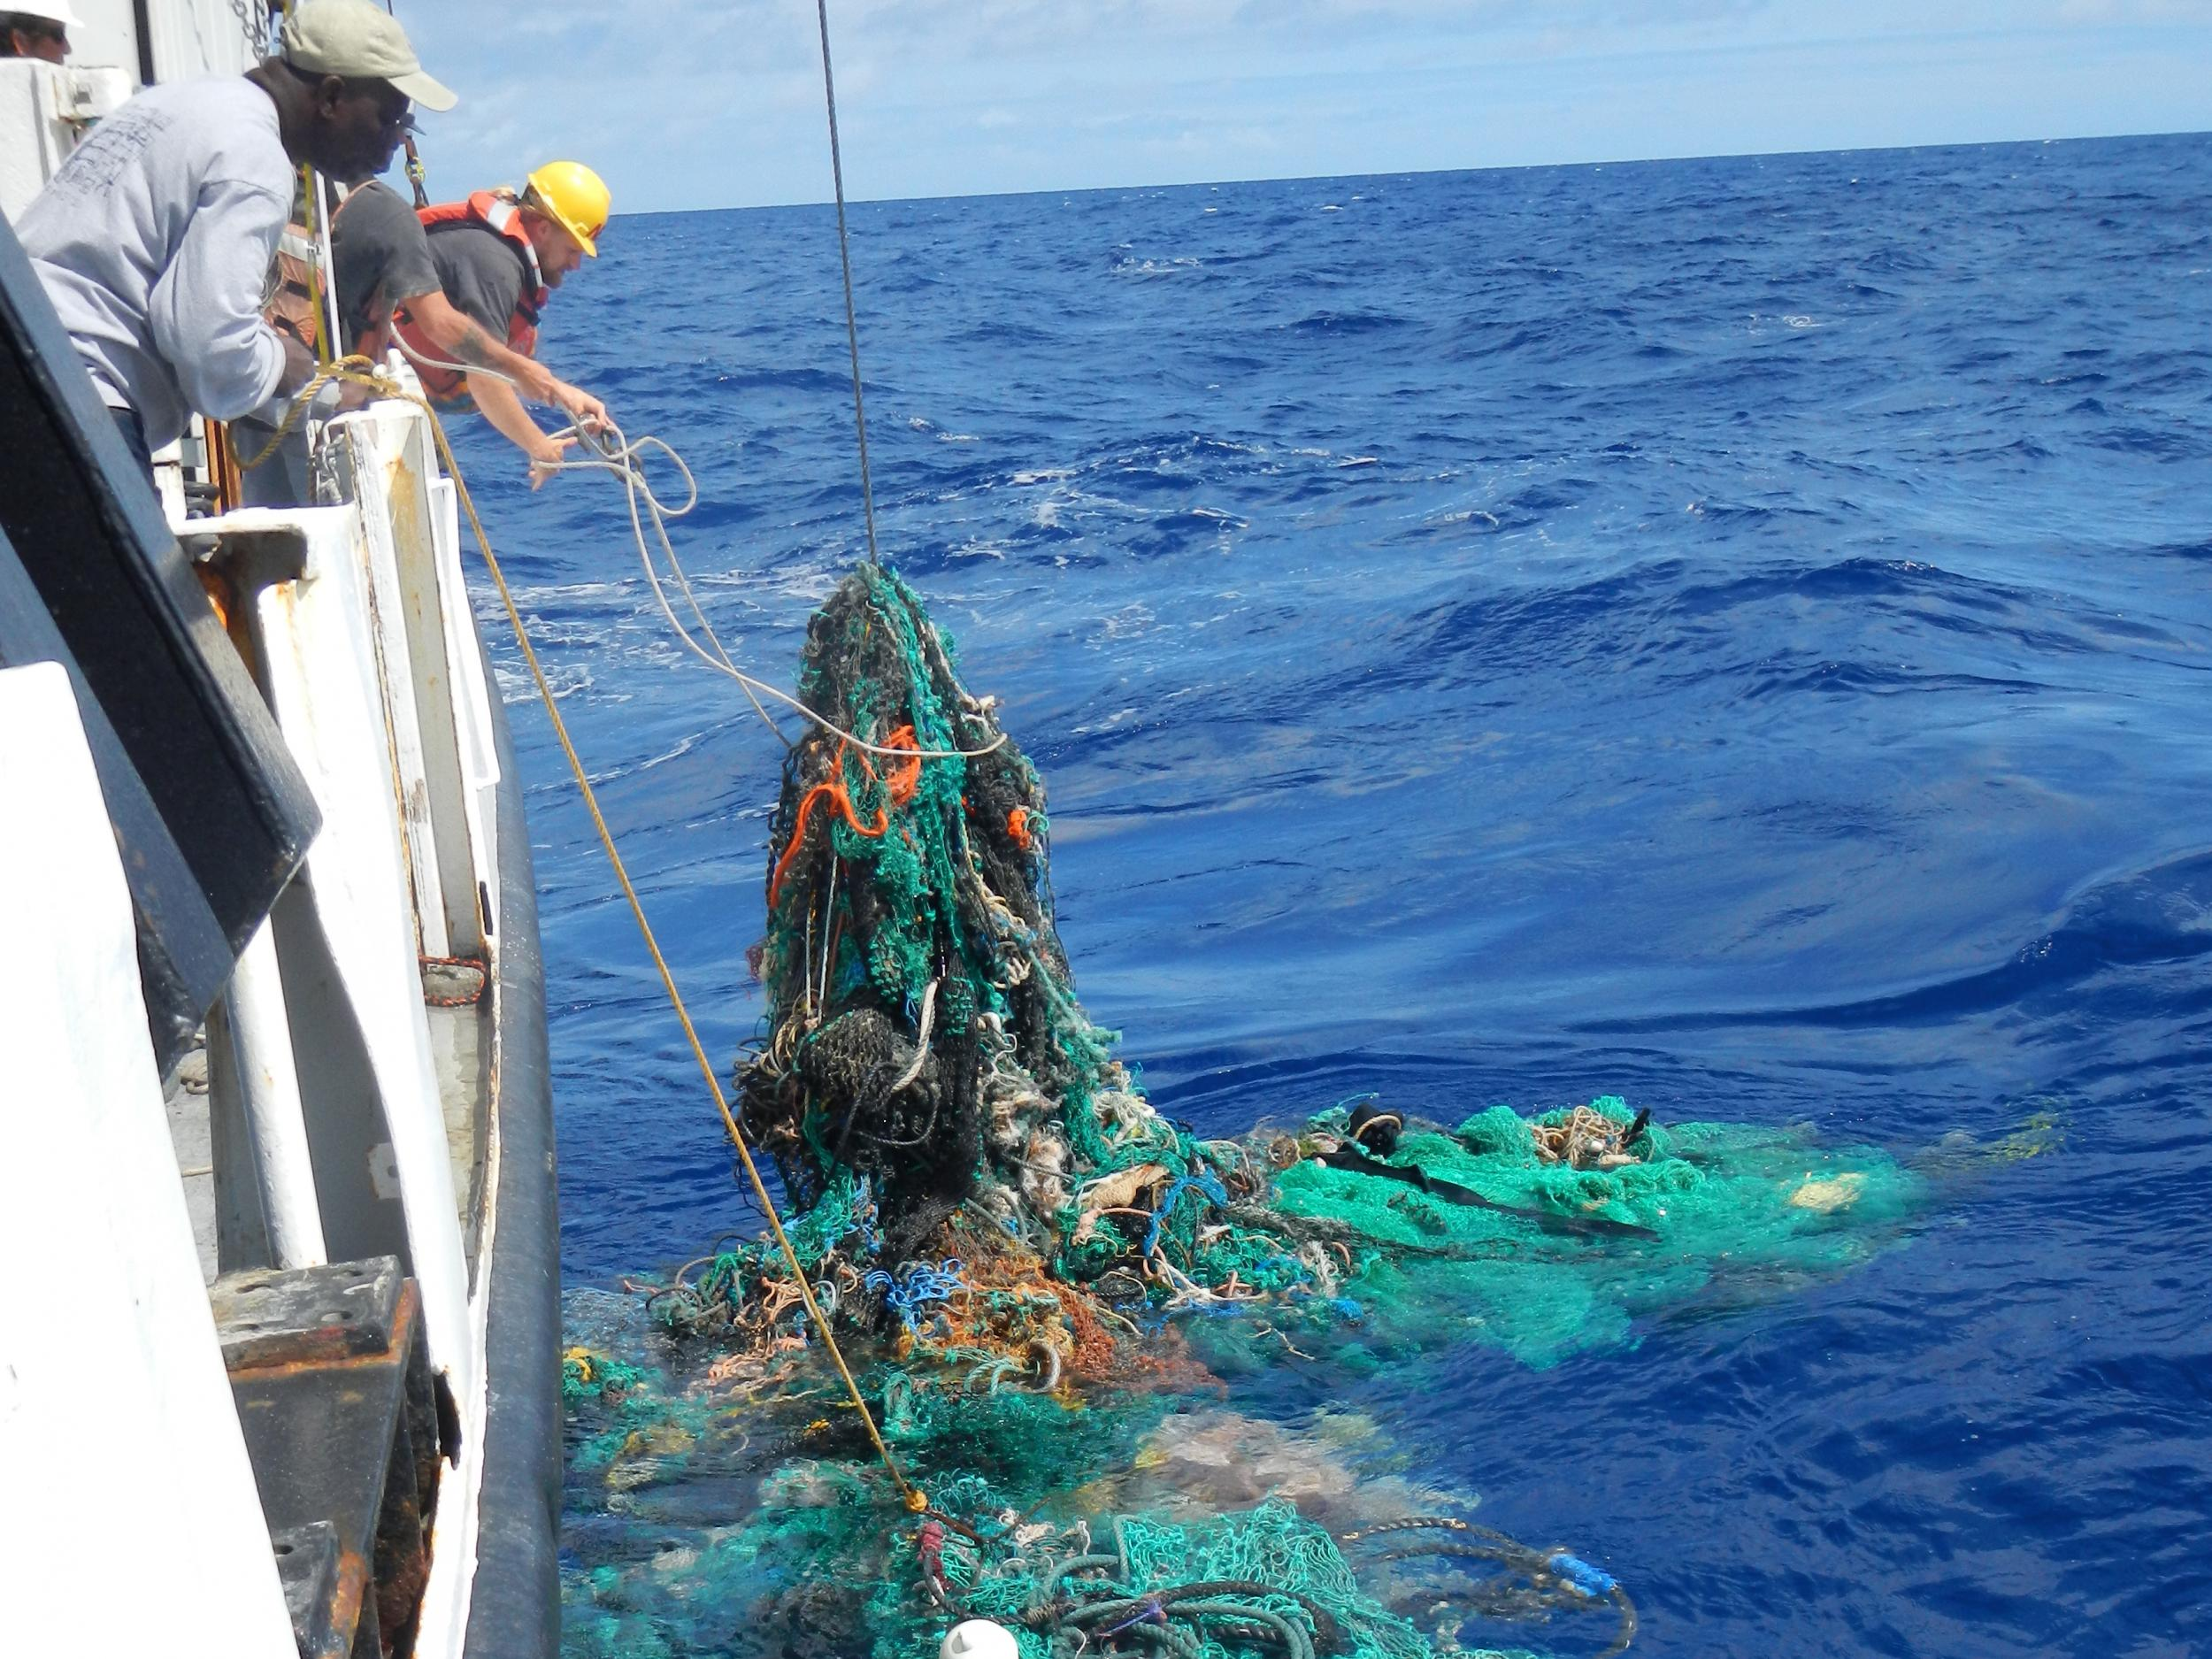 World's first ocean plastic-cleaning machine set to tackle